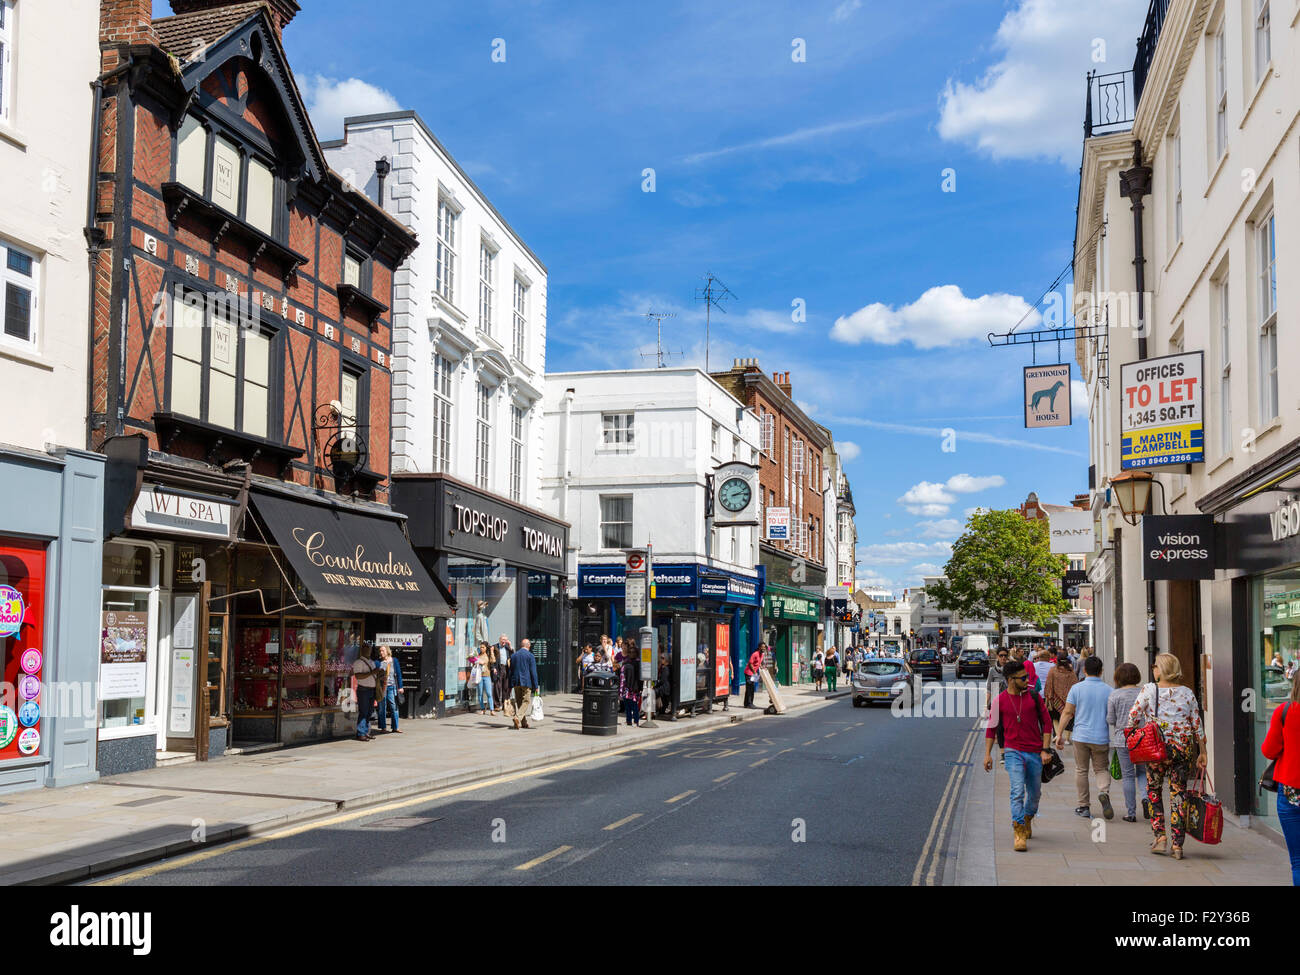 George Street in Richmond upon Thames, London, England, UK - Stock Image